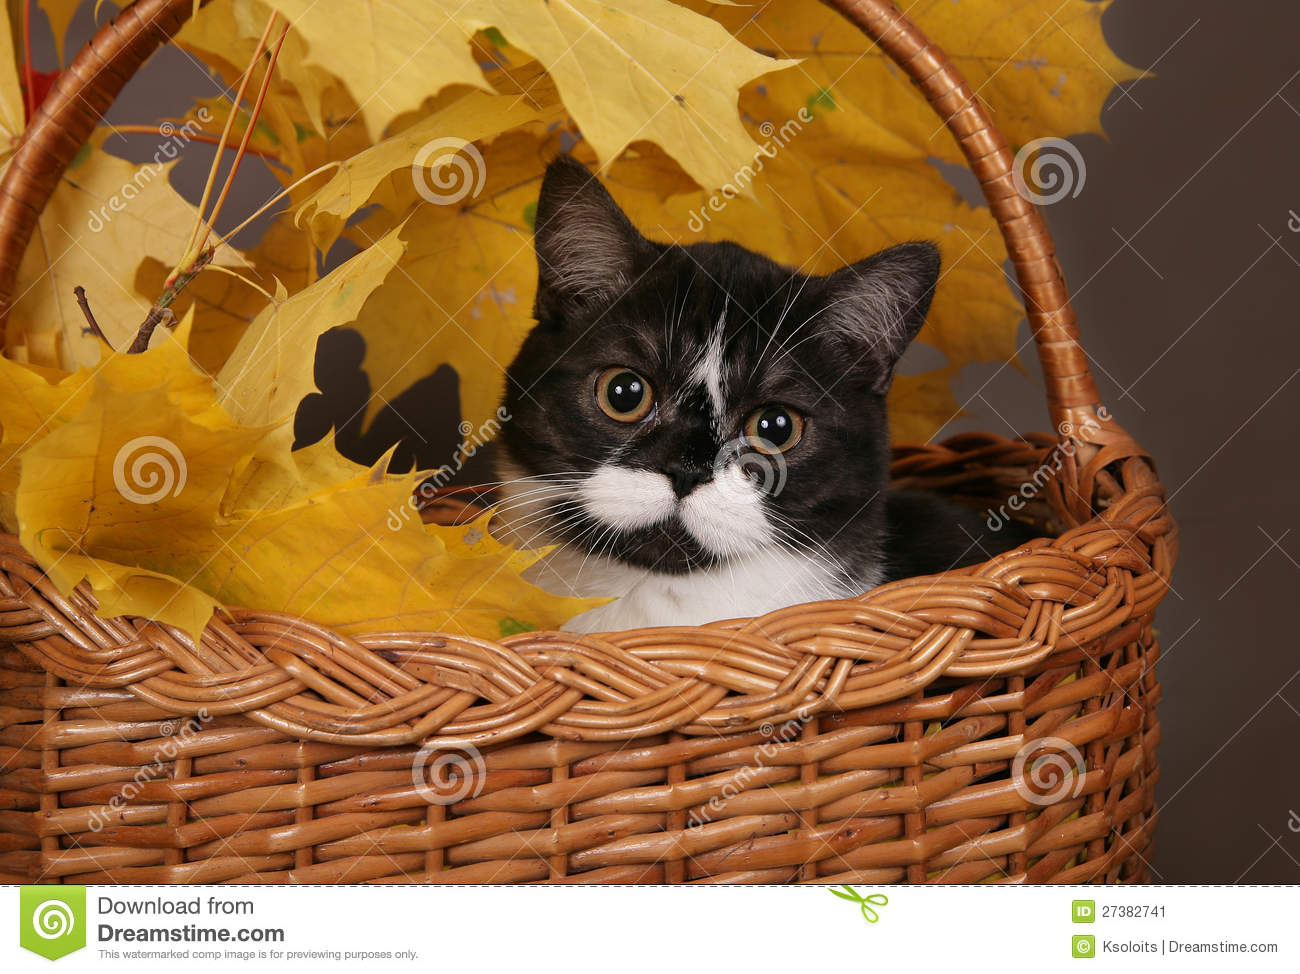 Black And White Cat In A Basket Stock Image - Image: 27382741